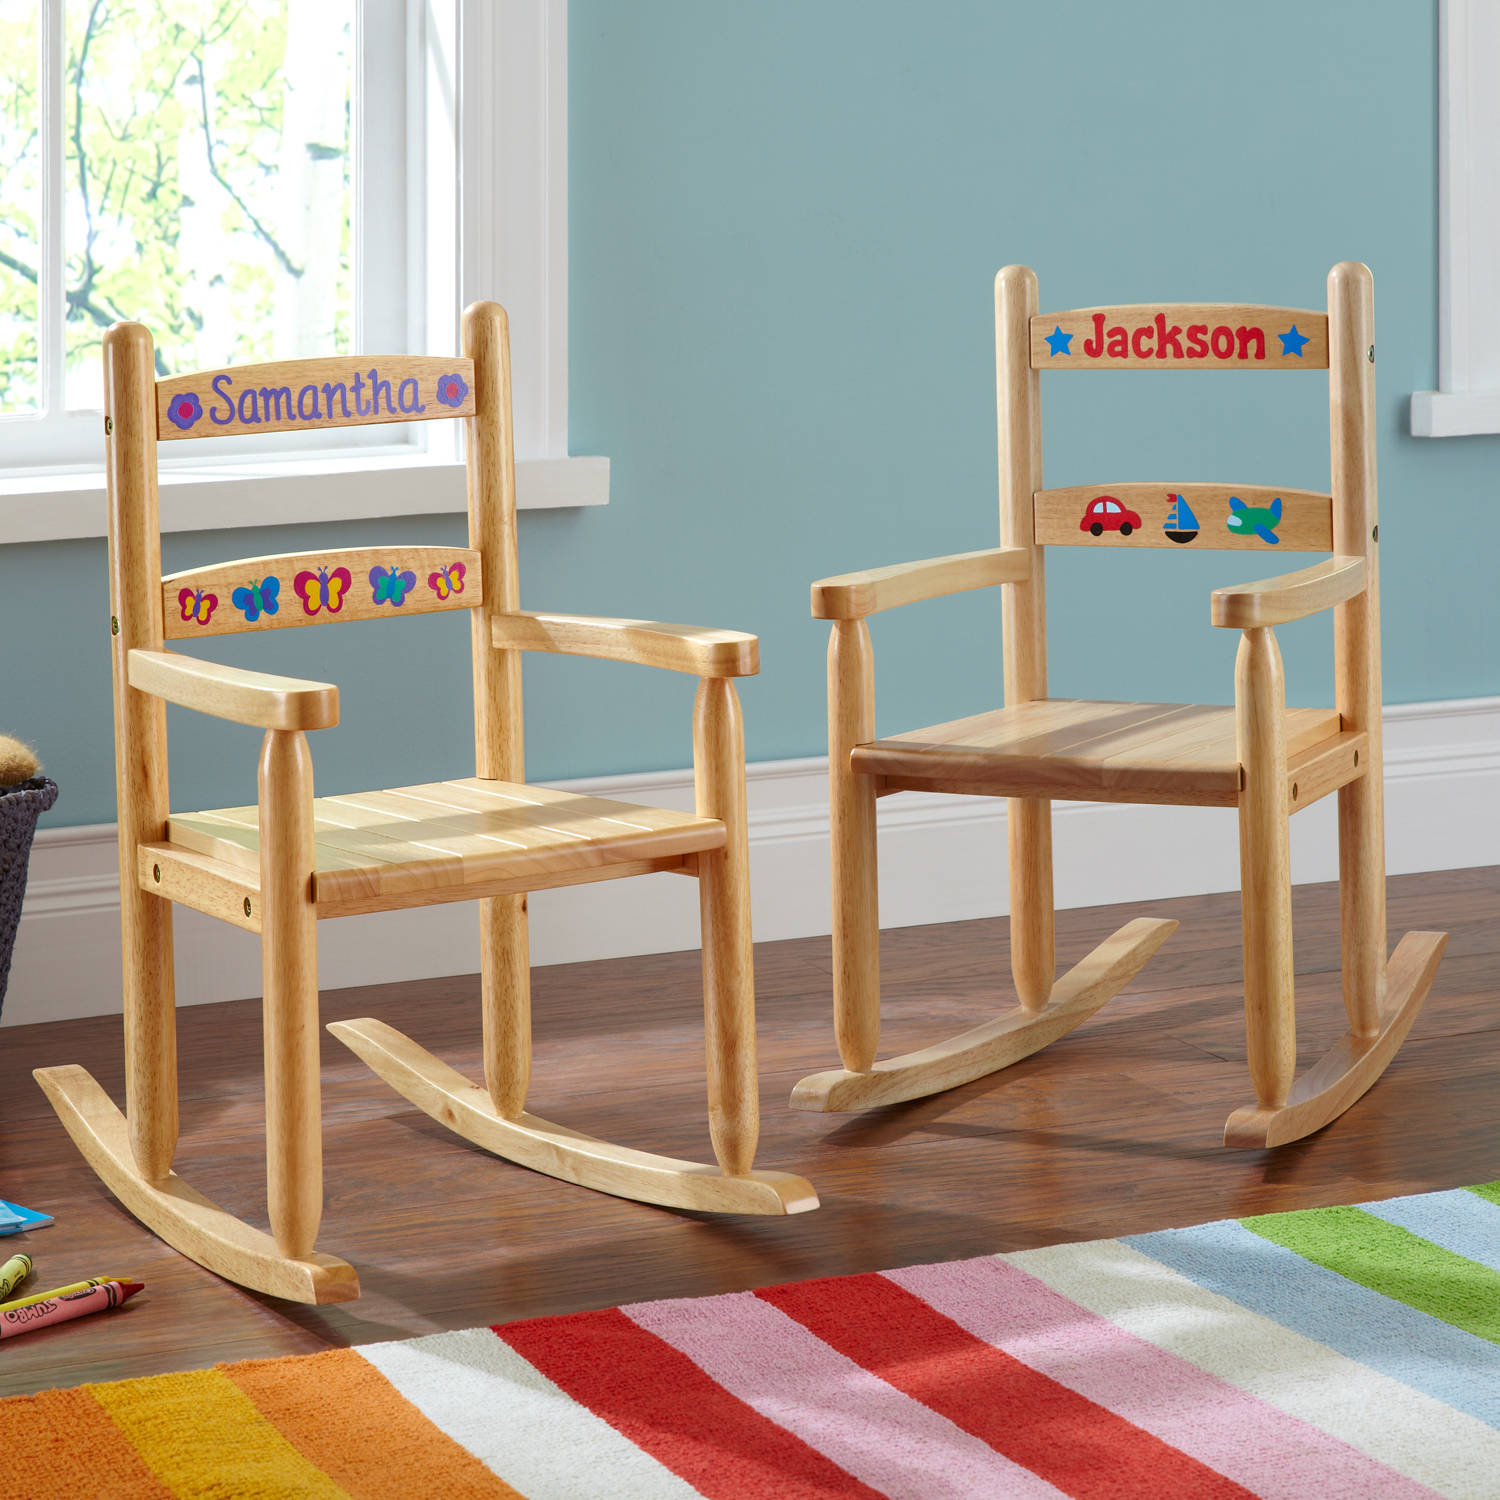 Personalized Wooden Rocking Chair with Transportation Design